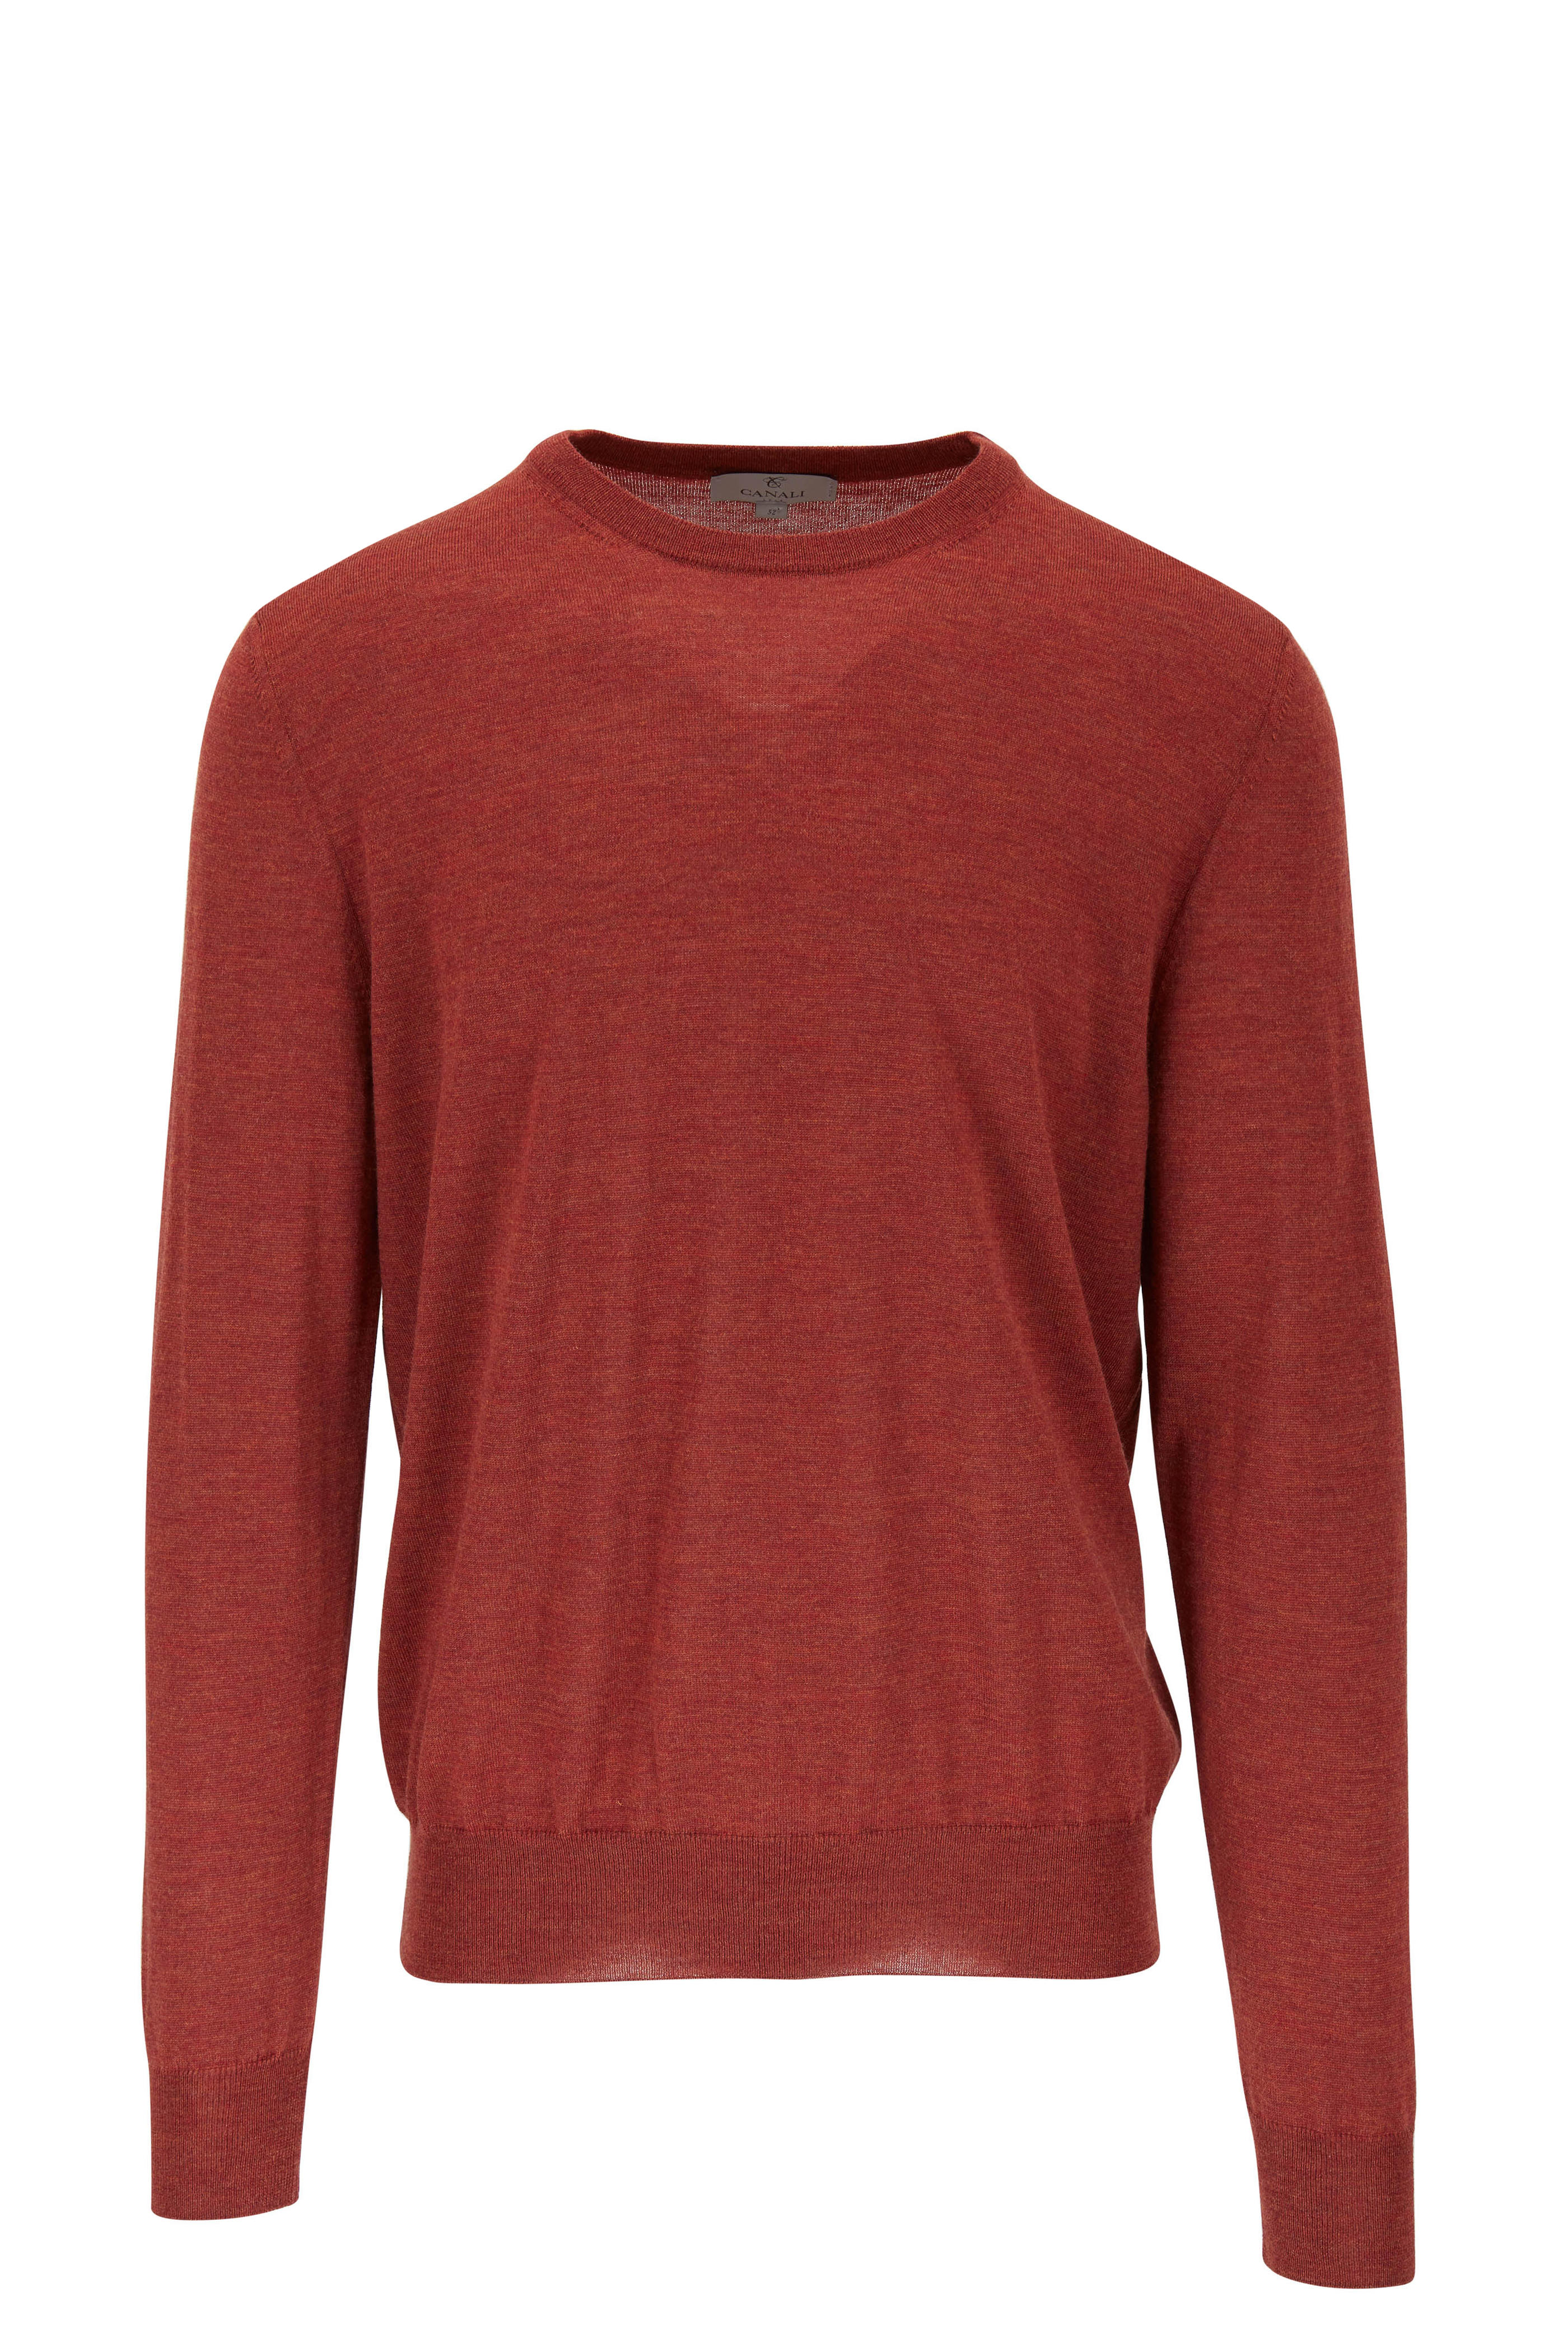 3b814f08fd Canali - Rust Extrafine Merino Wool Crewneck Pullover | Mitchell Stores